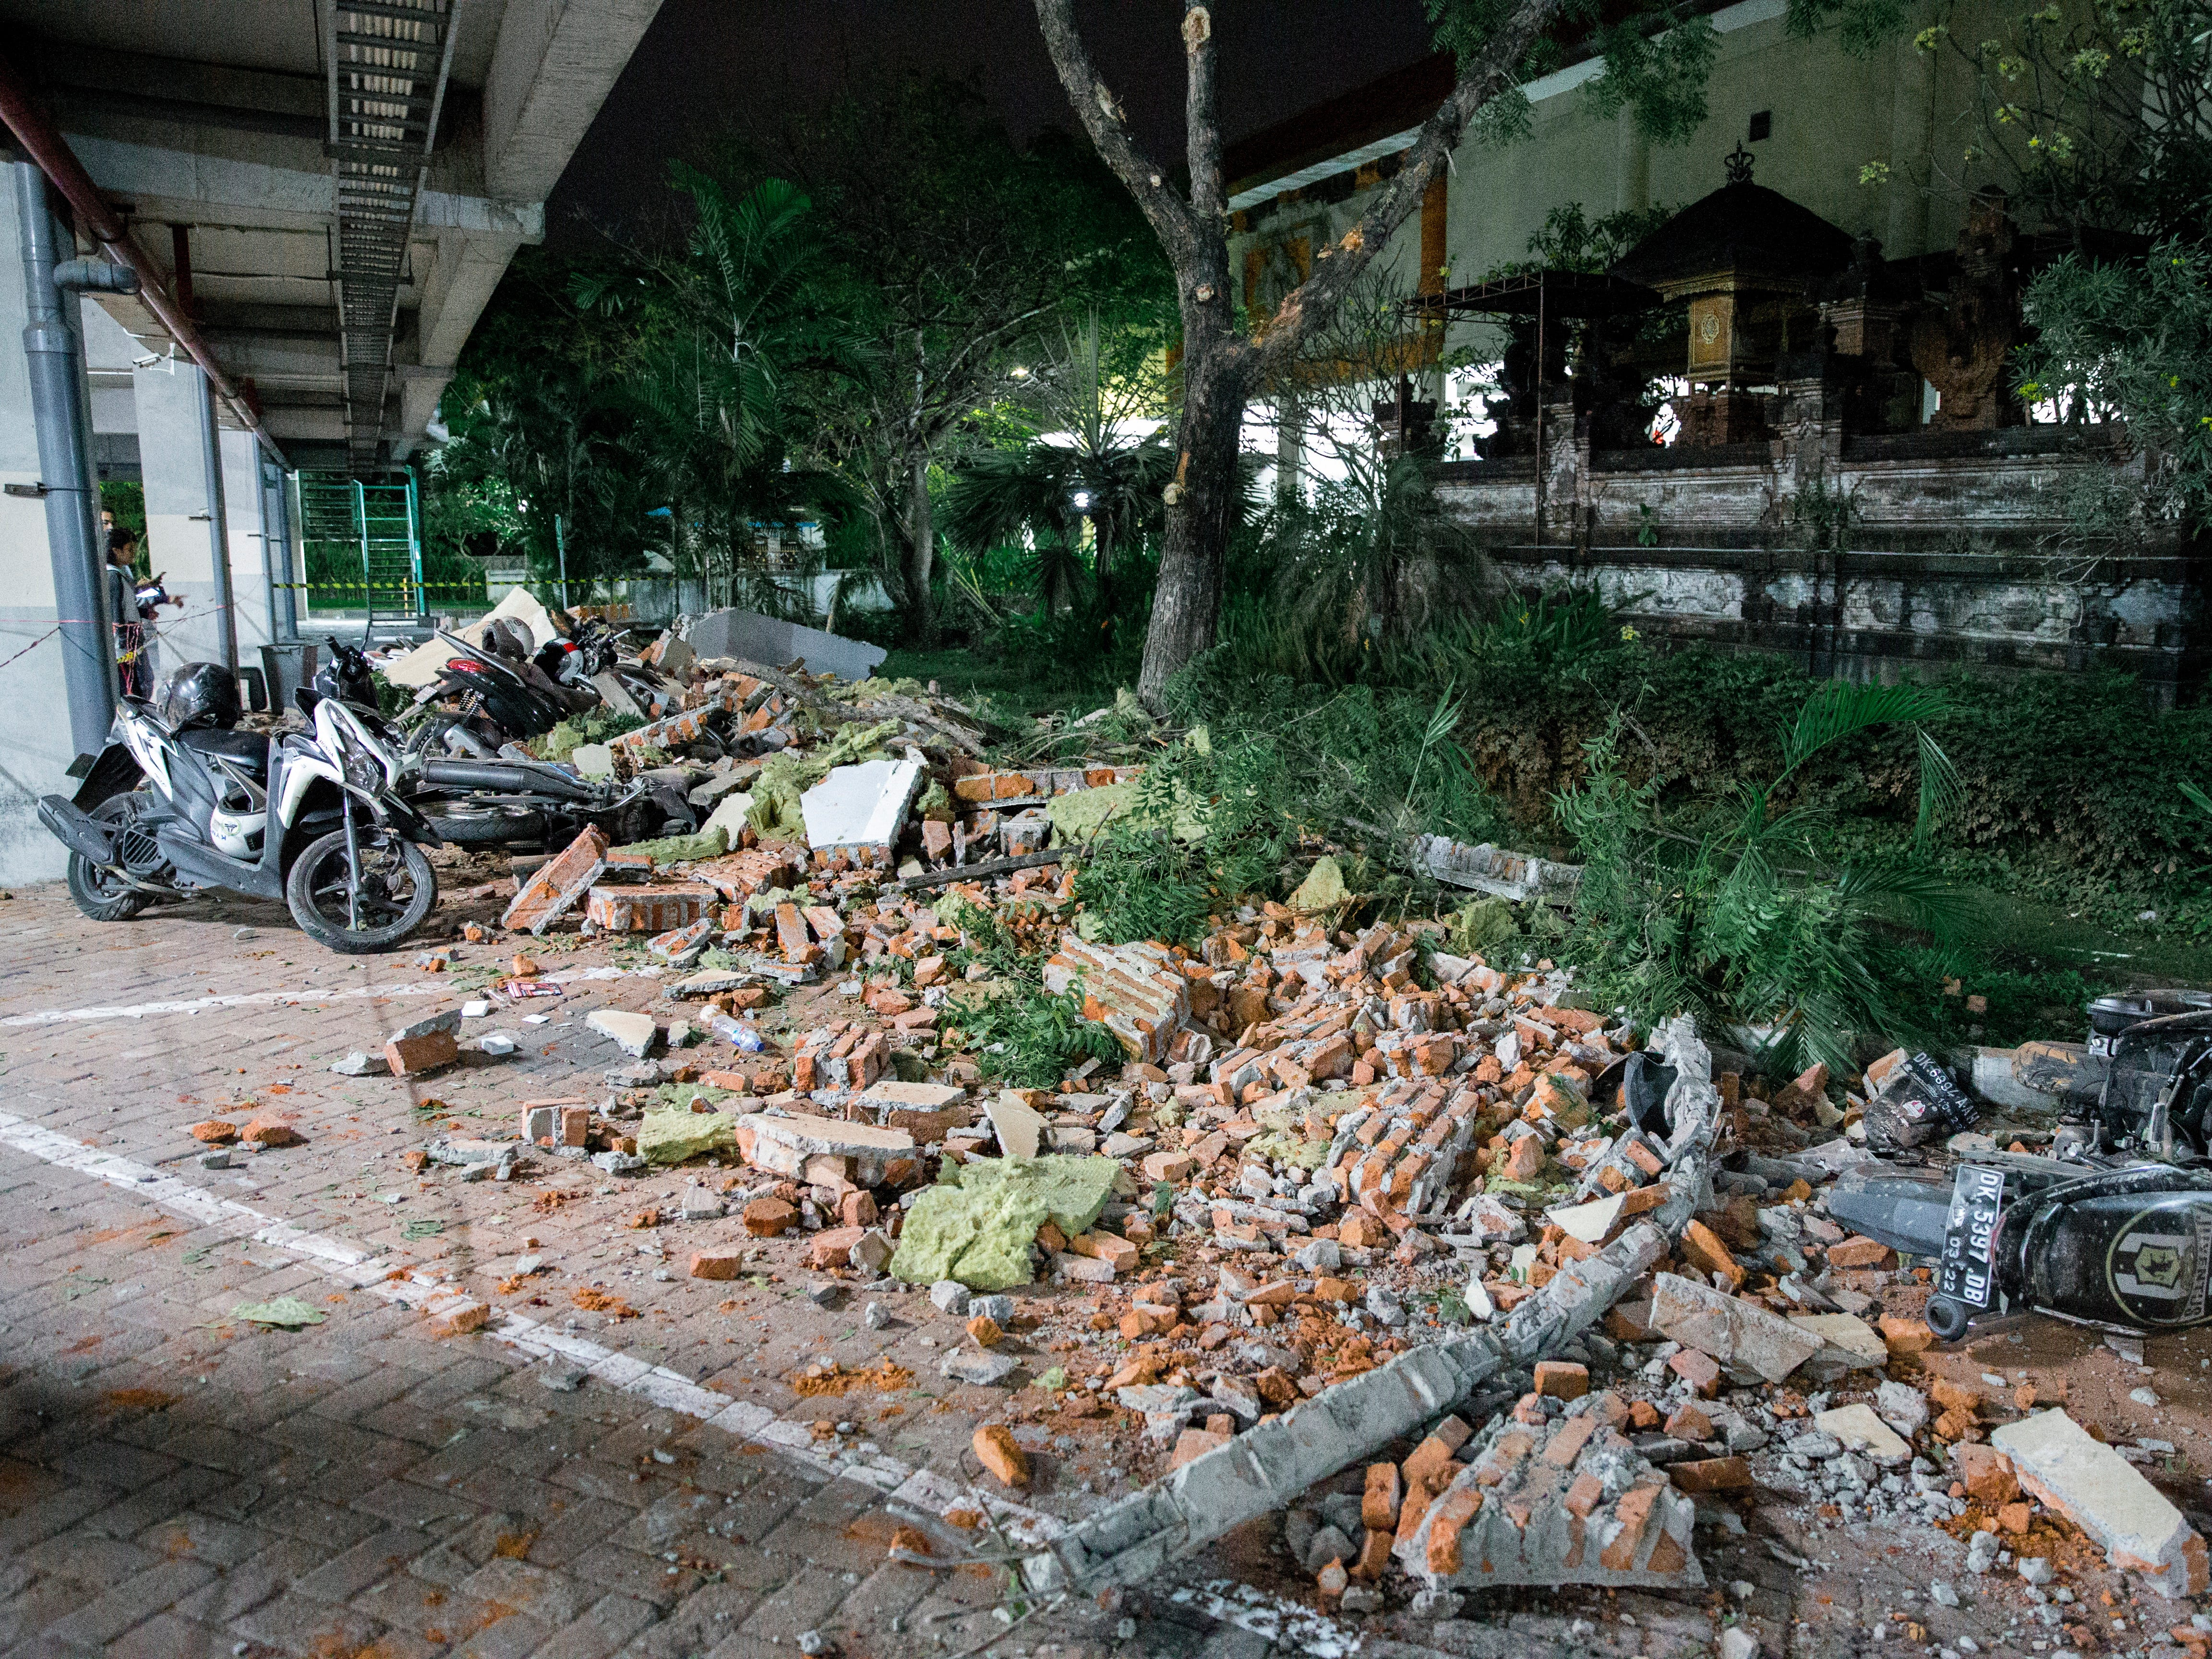 Parts of a shopping mall building collapsed after an earthquake was felt in Denpasar, Bali, Indonesia on Aug. 5 2018.